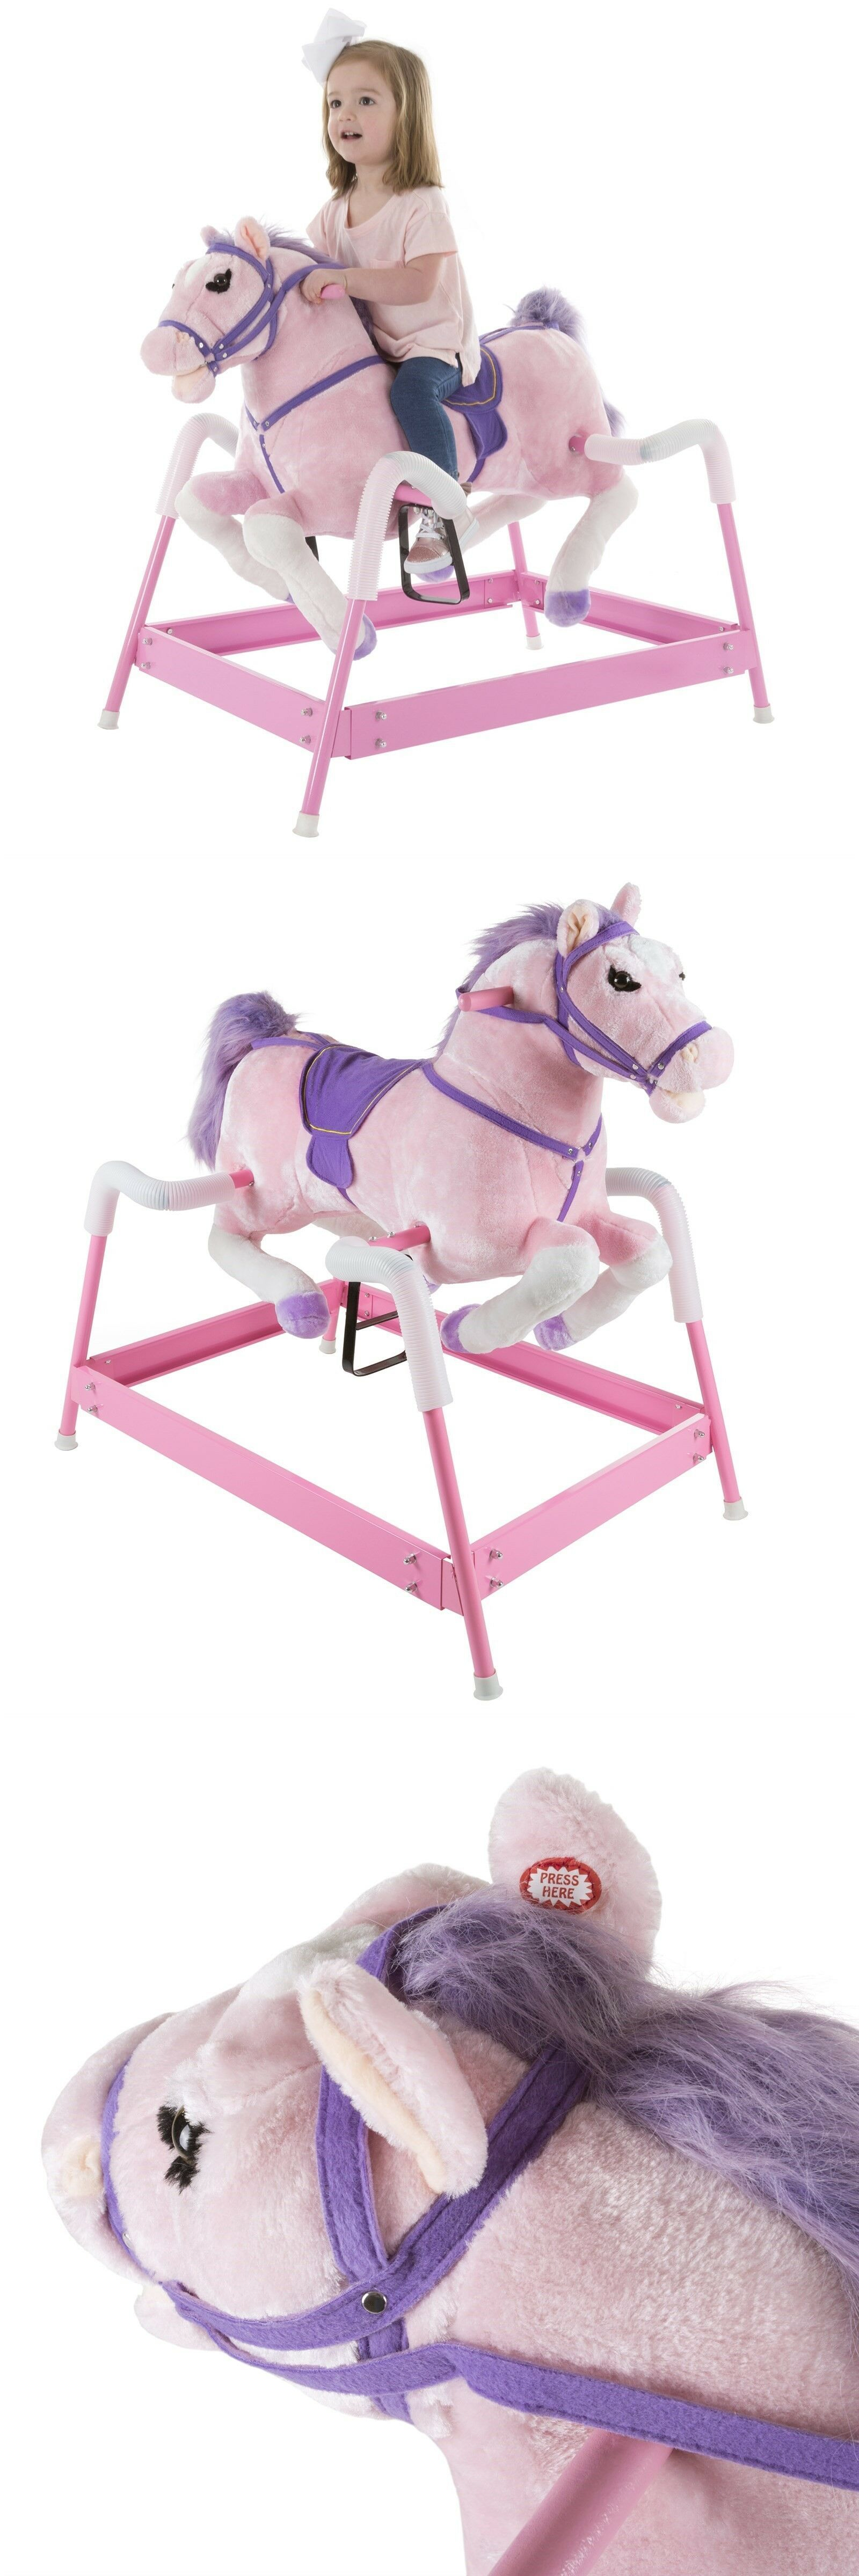 Rocking Horses 19024 Plush Pink Rocking Riding Bouncing Horse Pony On Springs Galloping Sounds Buy It Now Only 114 99 On Rocking Horses 19024 Thing